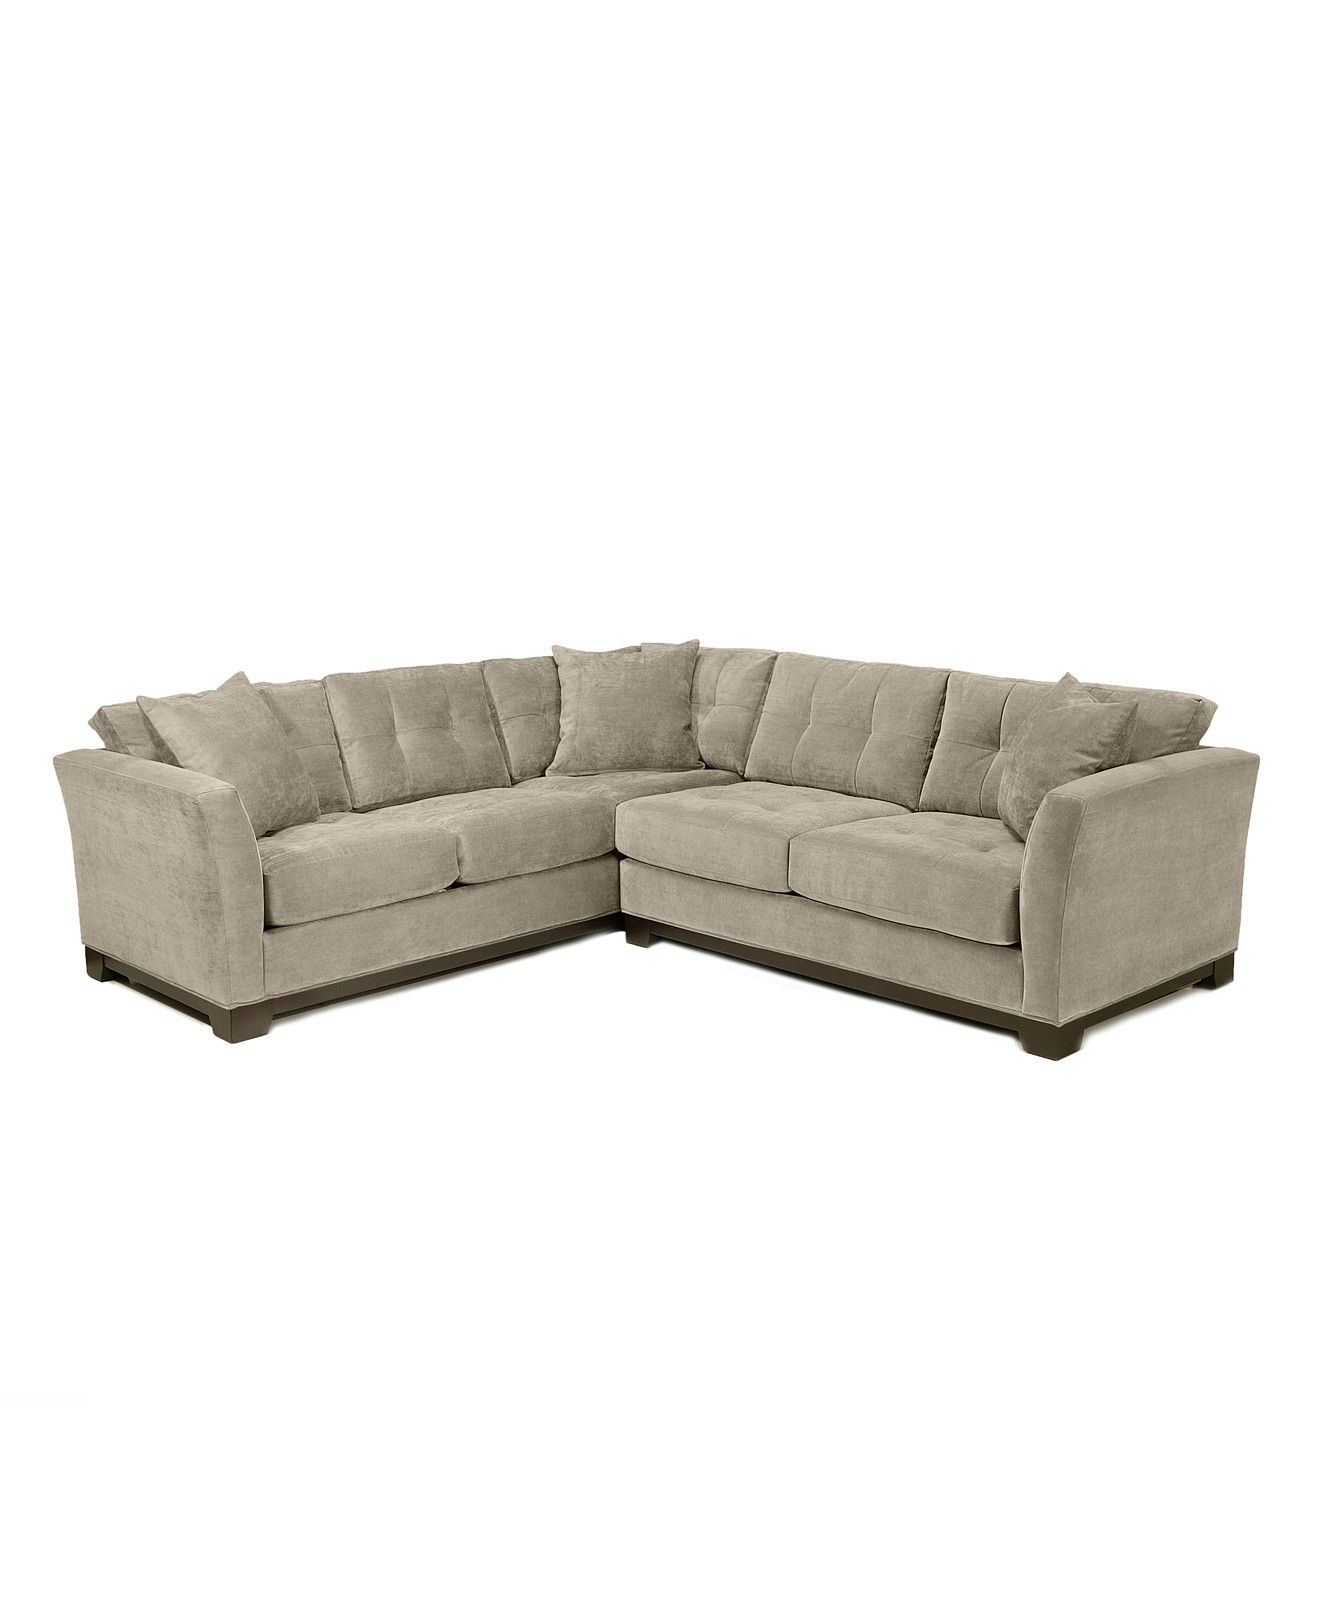 sectional sofas microfiber fabric 3 seater recliner sofa with chaise elliot 2 piece custom